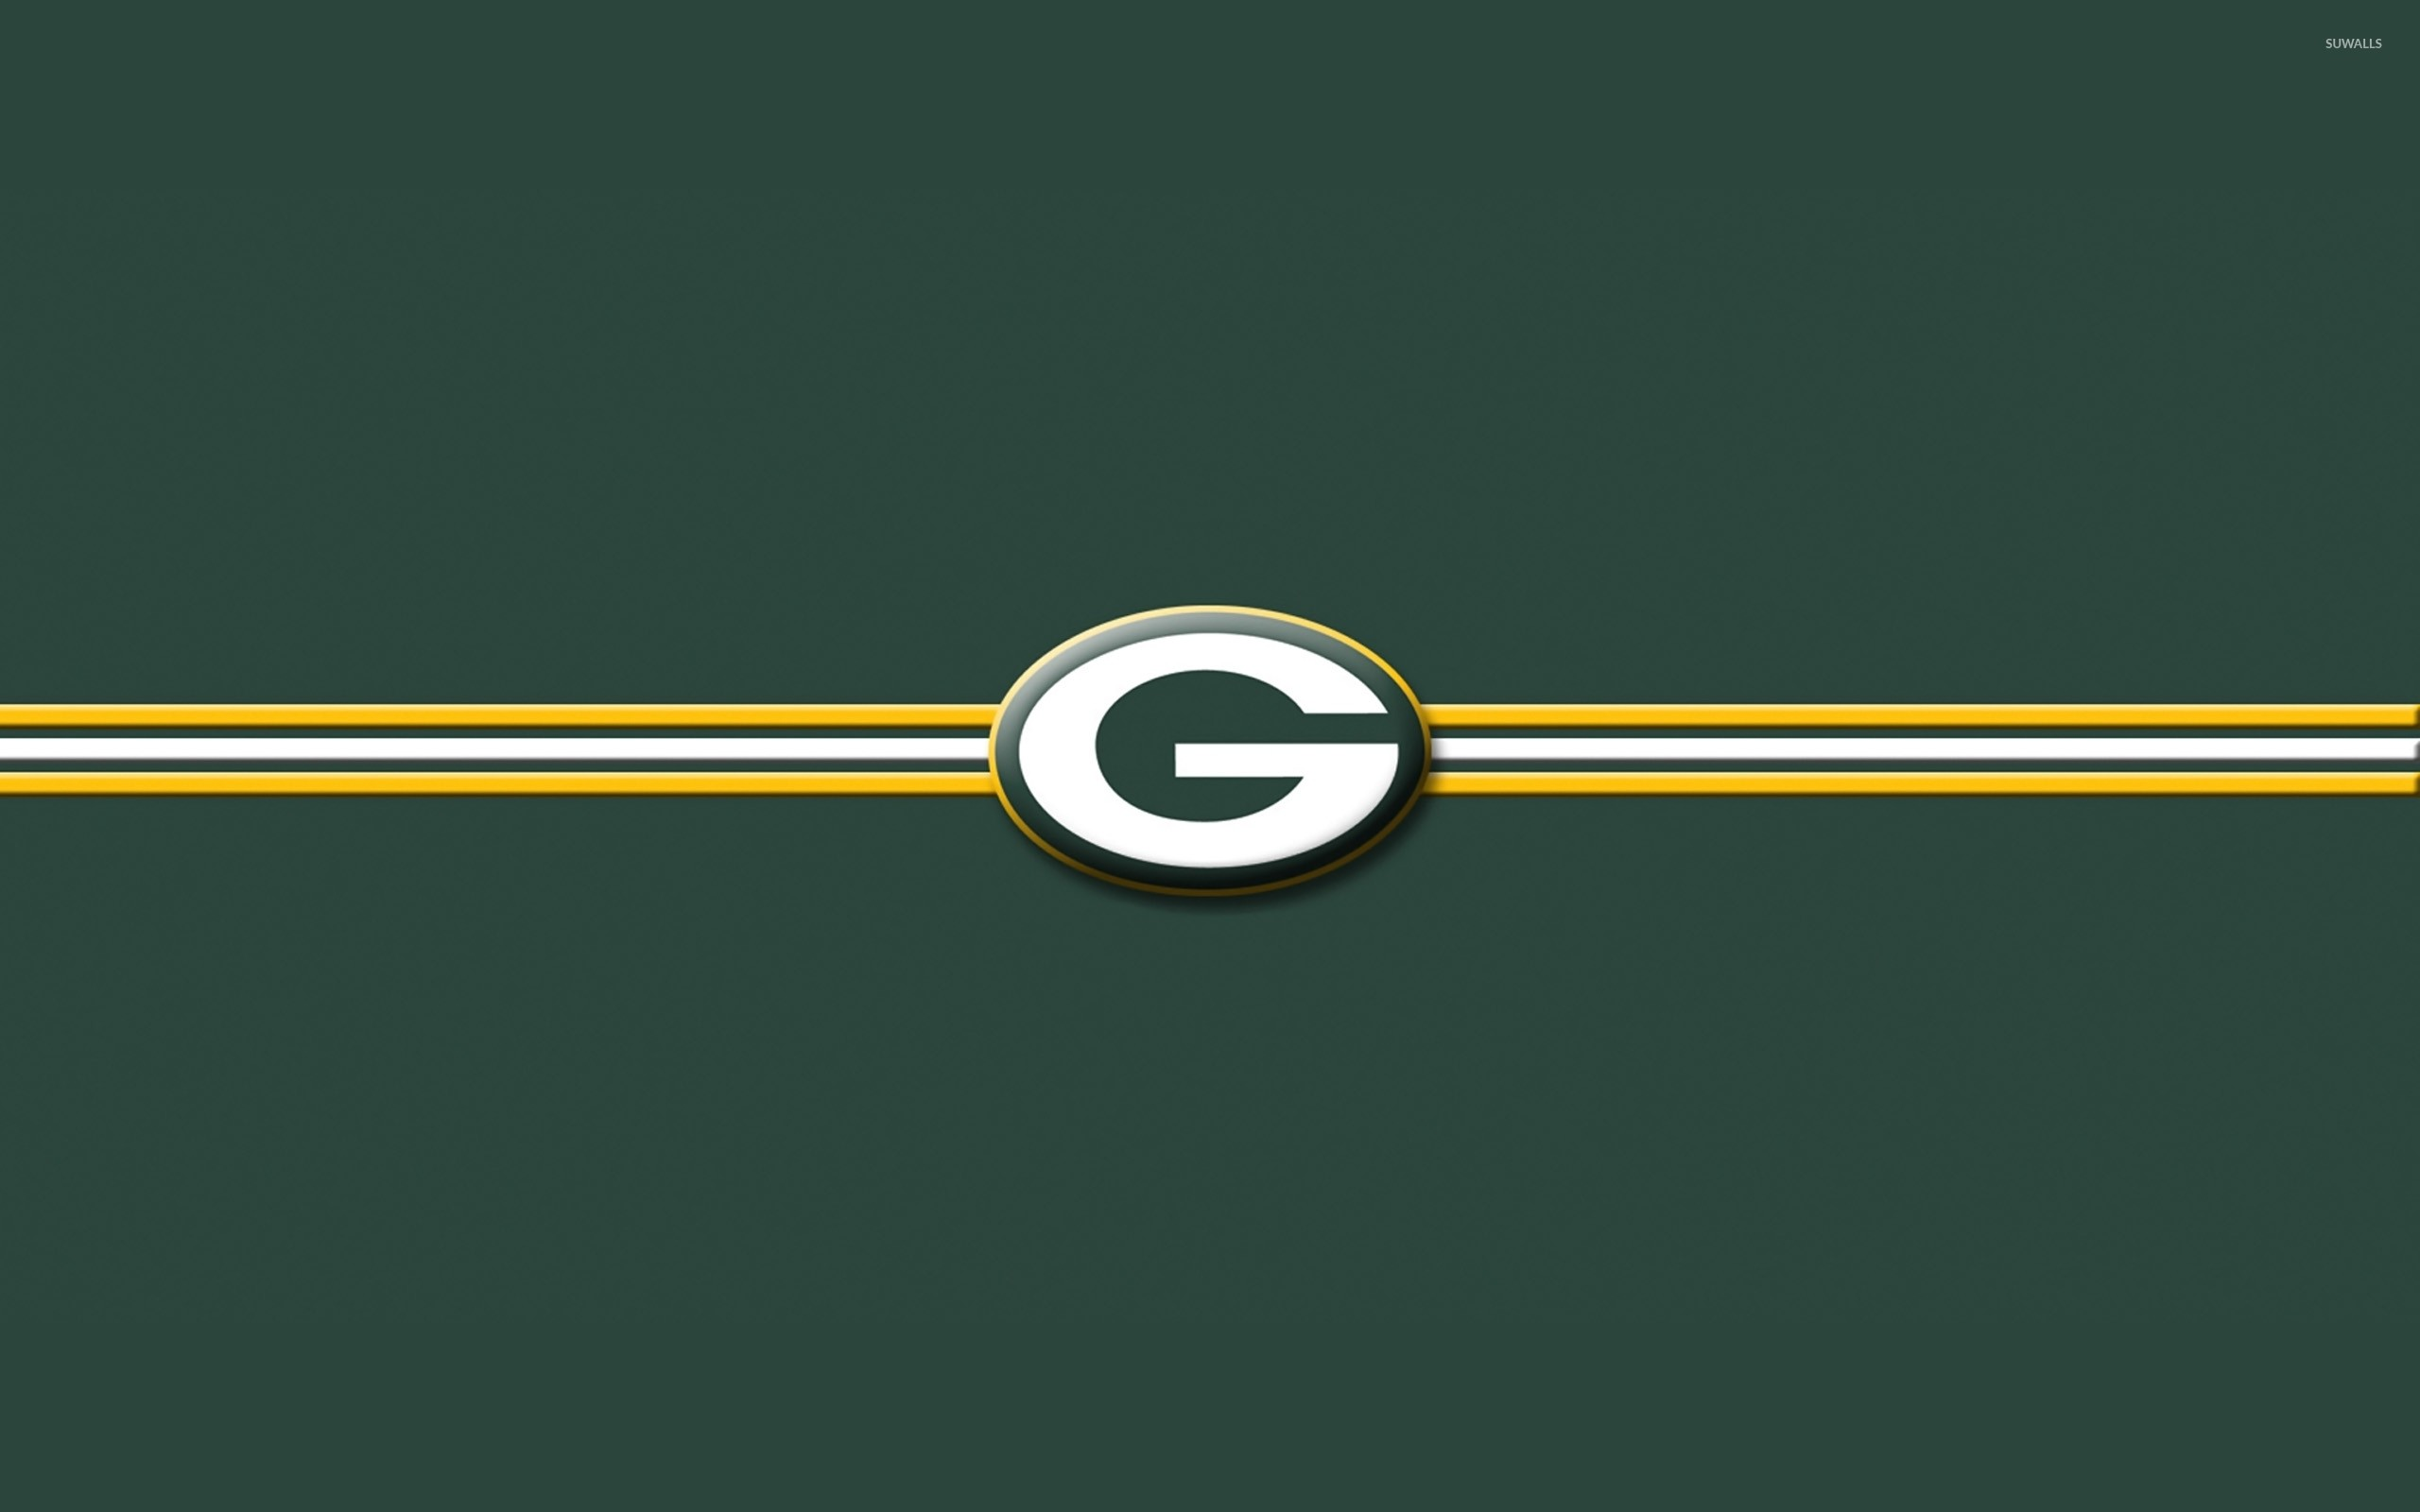 Green Bay Packers on green background wallpaper